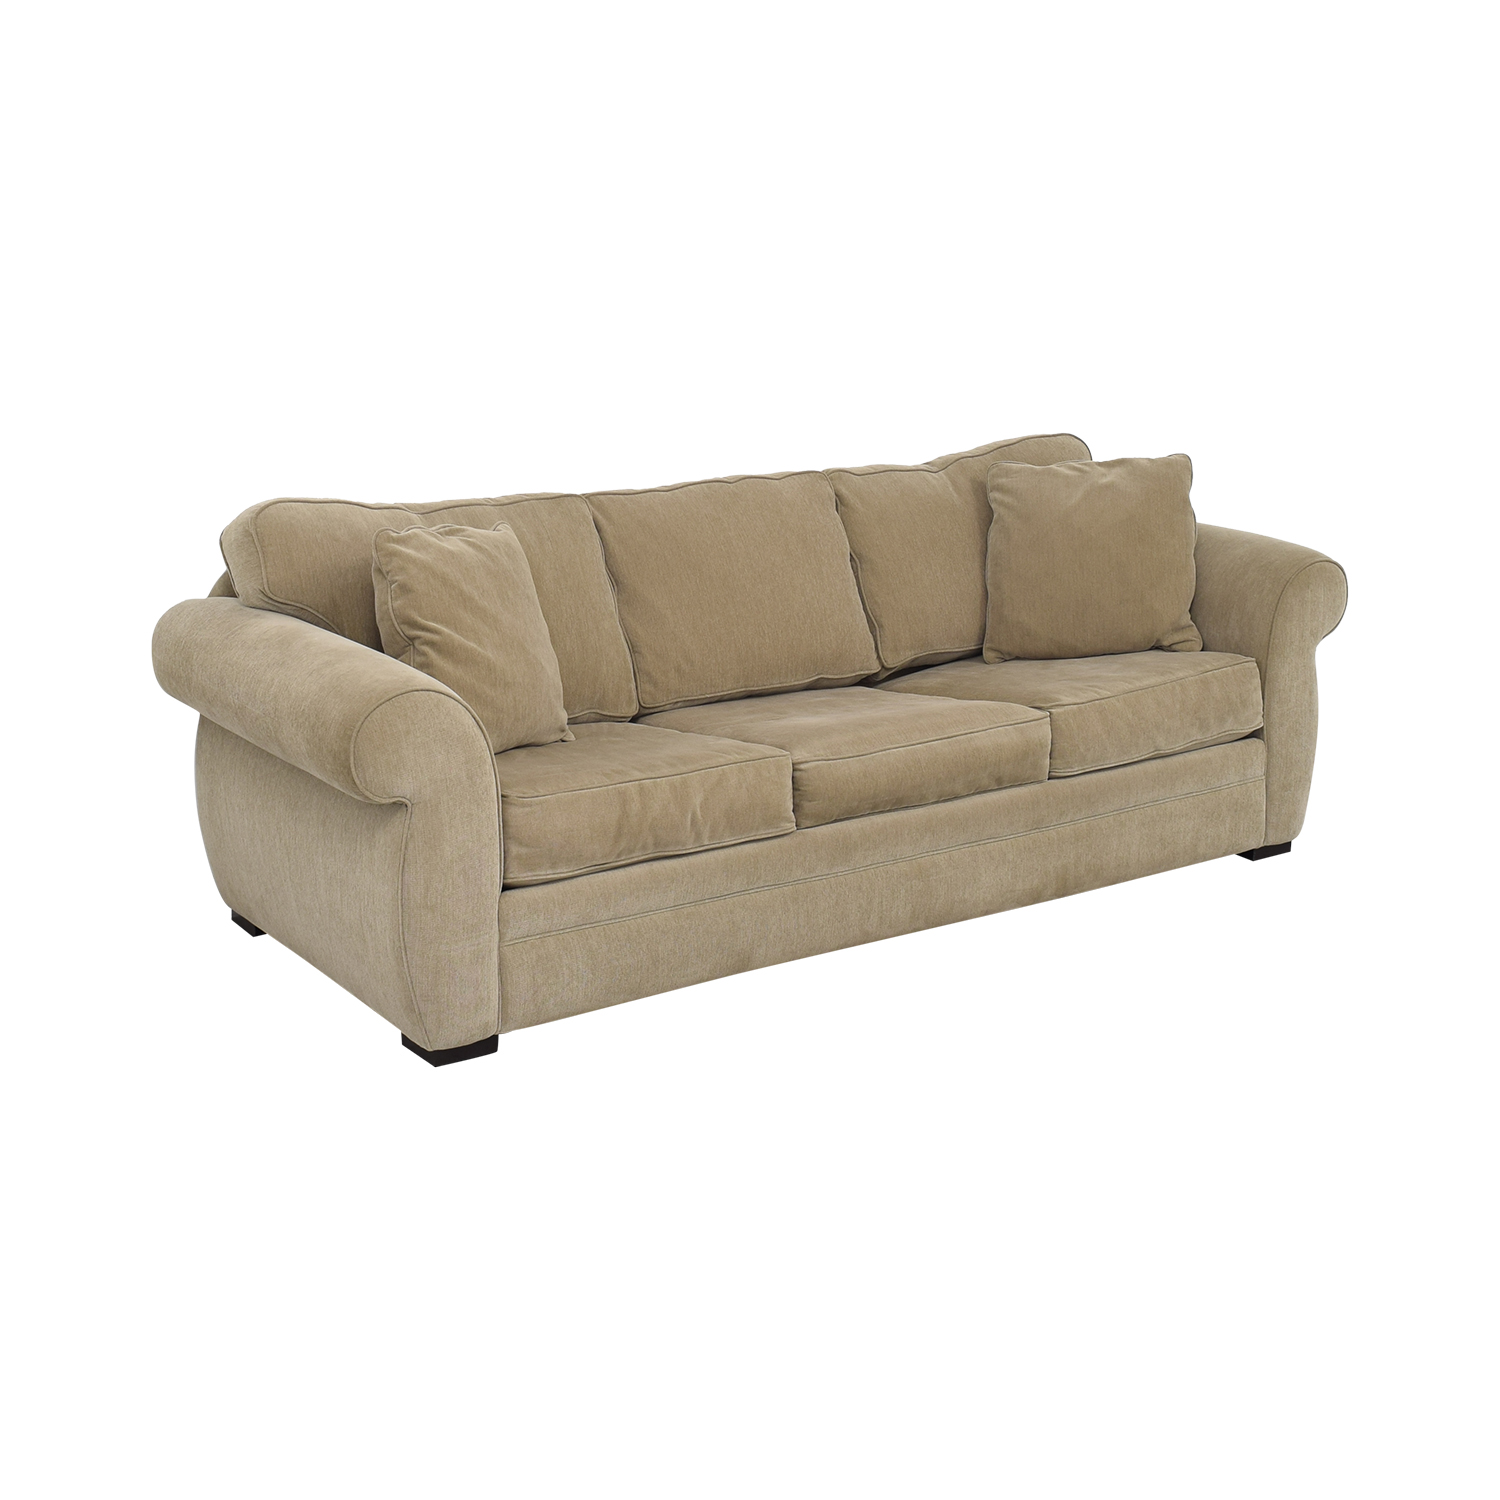 Macy's Macy's Queen Sleeper Sofa discount